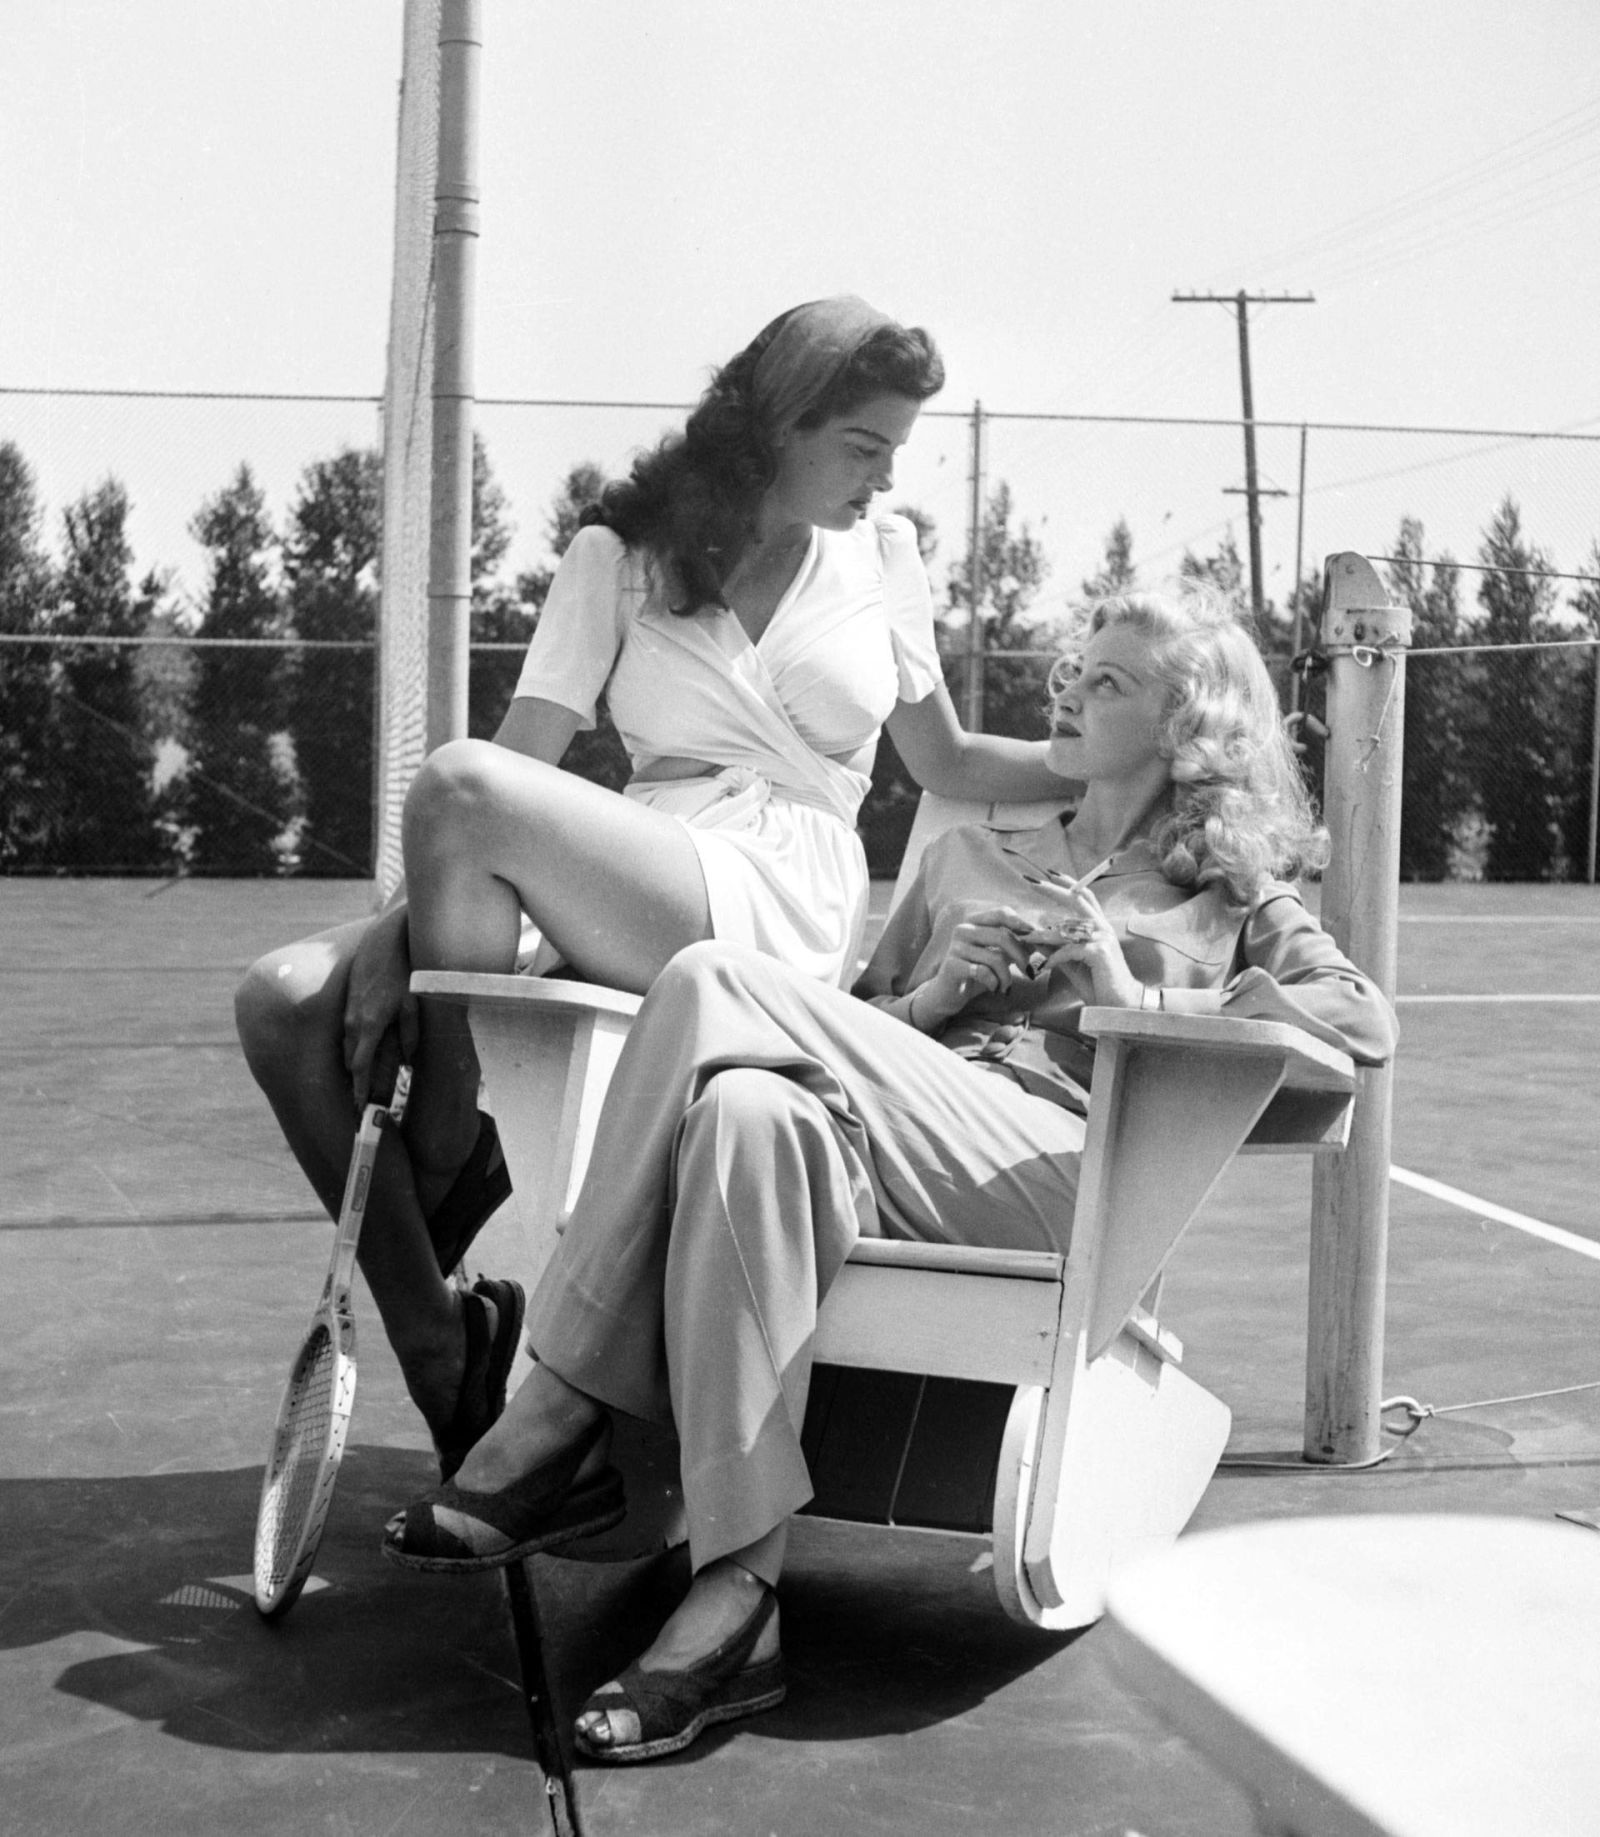 Jane Russel and a Friend On a Tennis Court, 1944